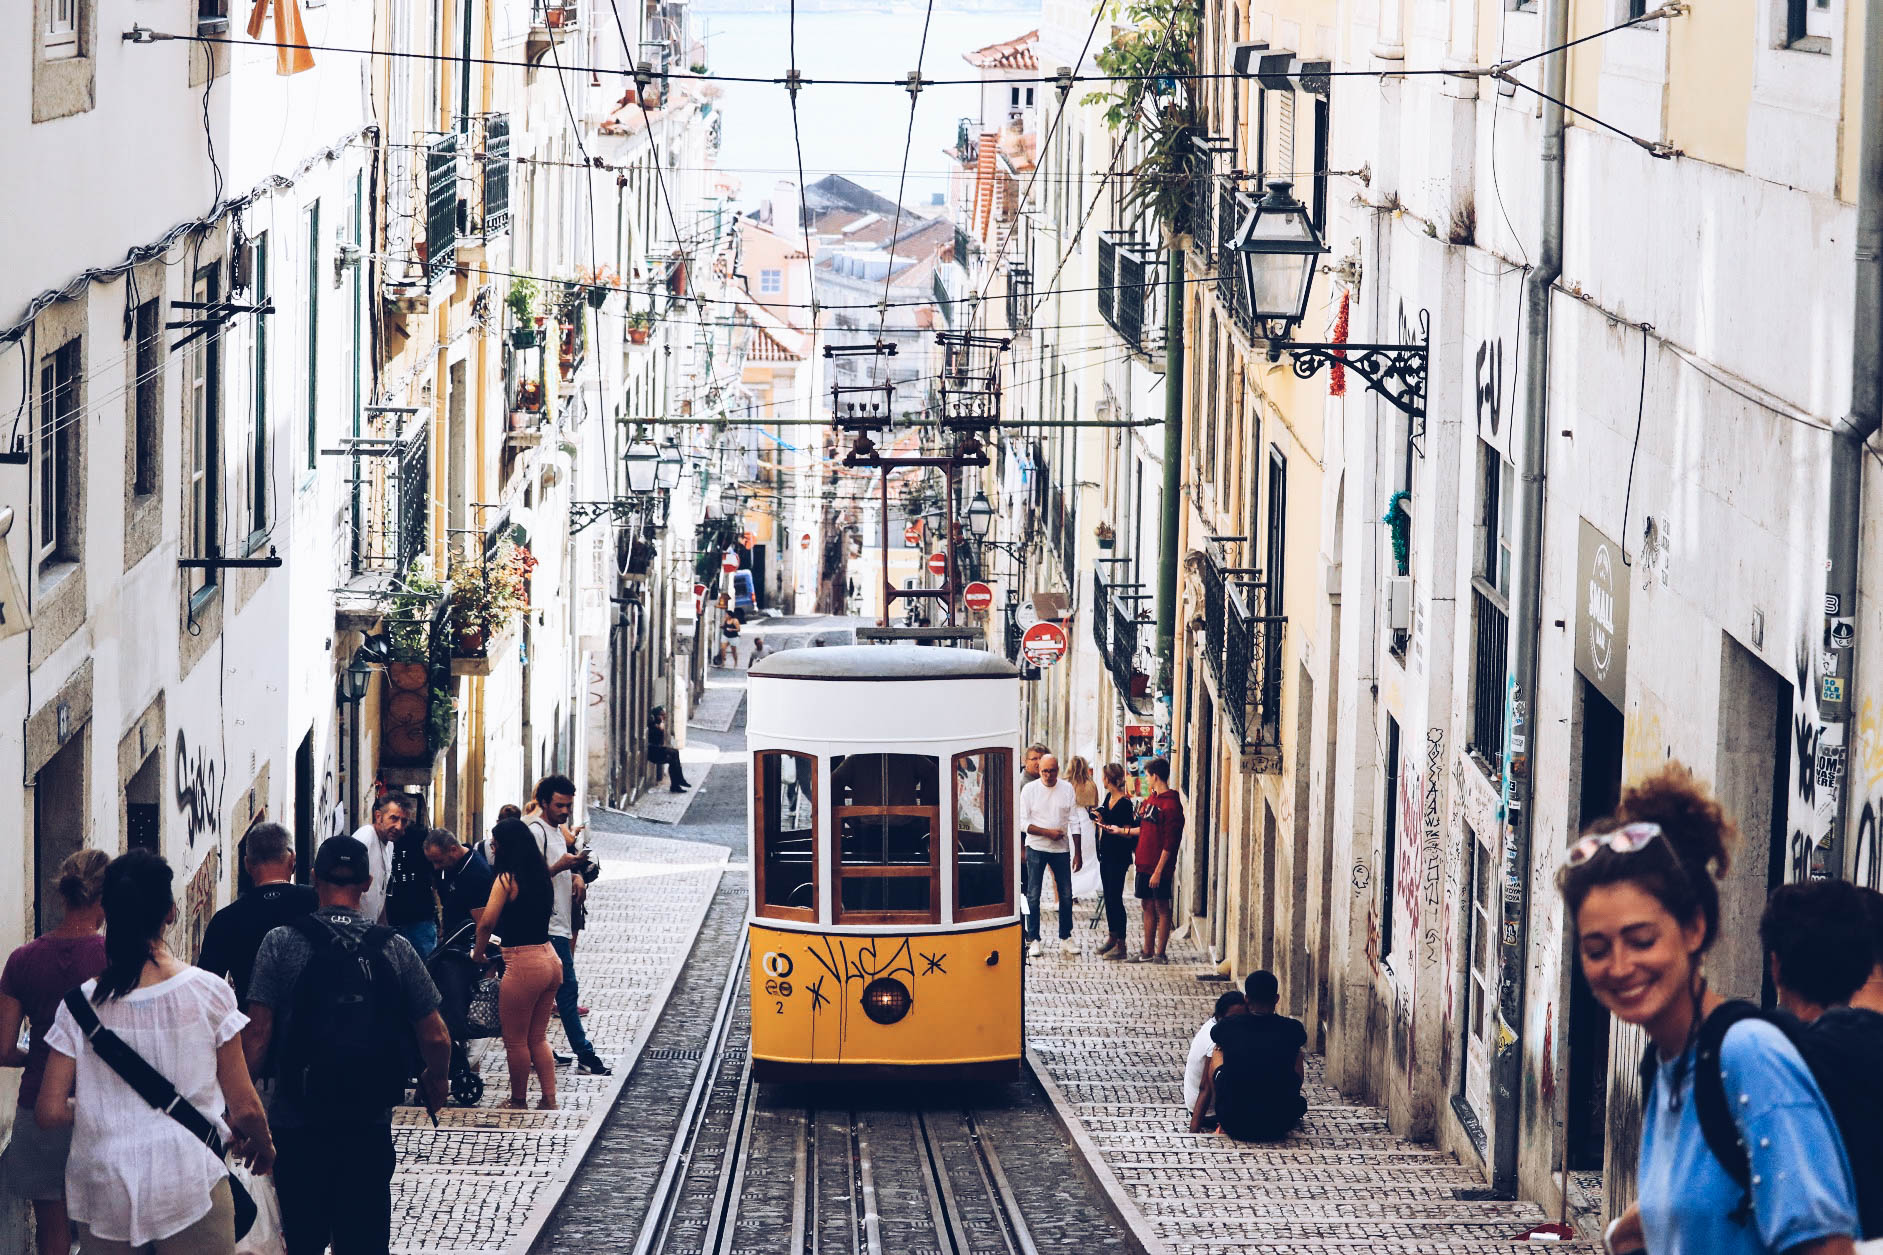 INSIDERS GUIDE TO LISBOA